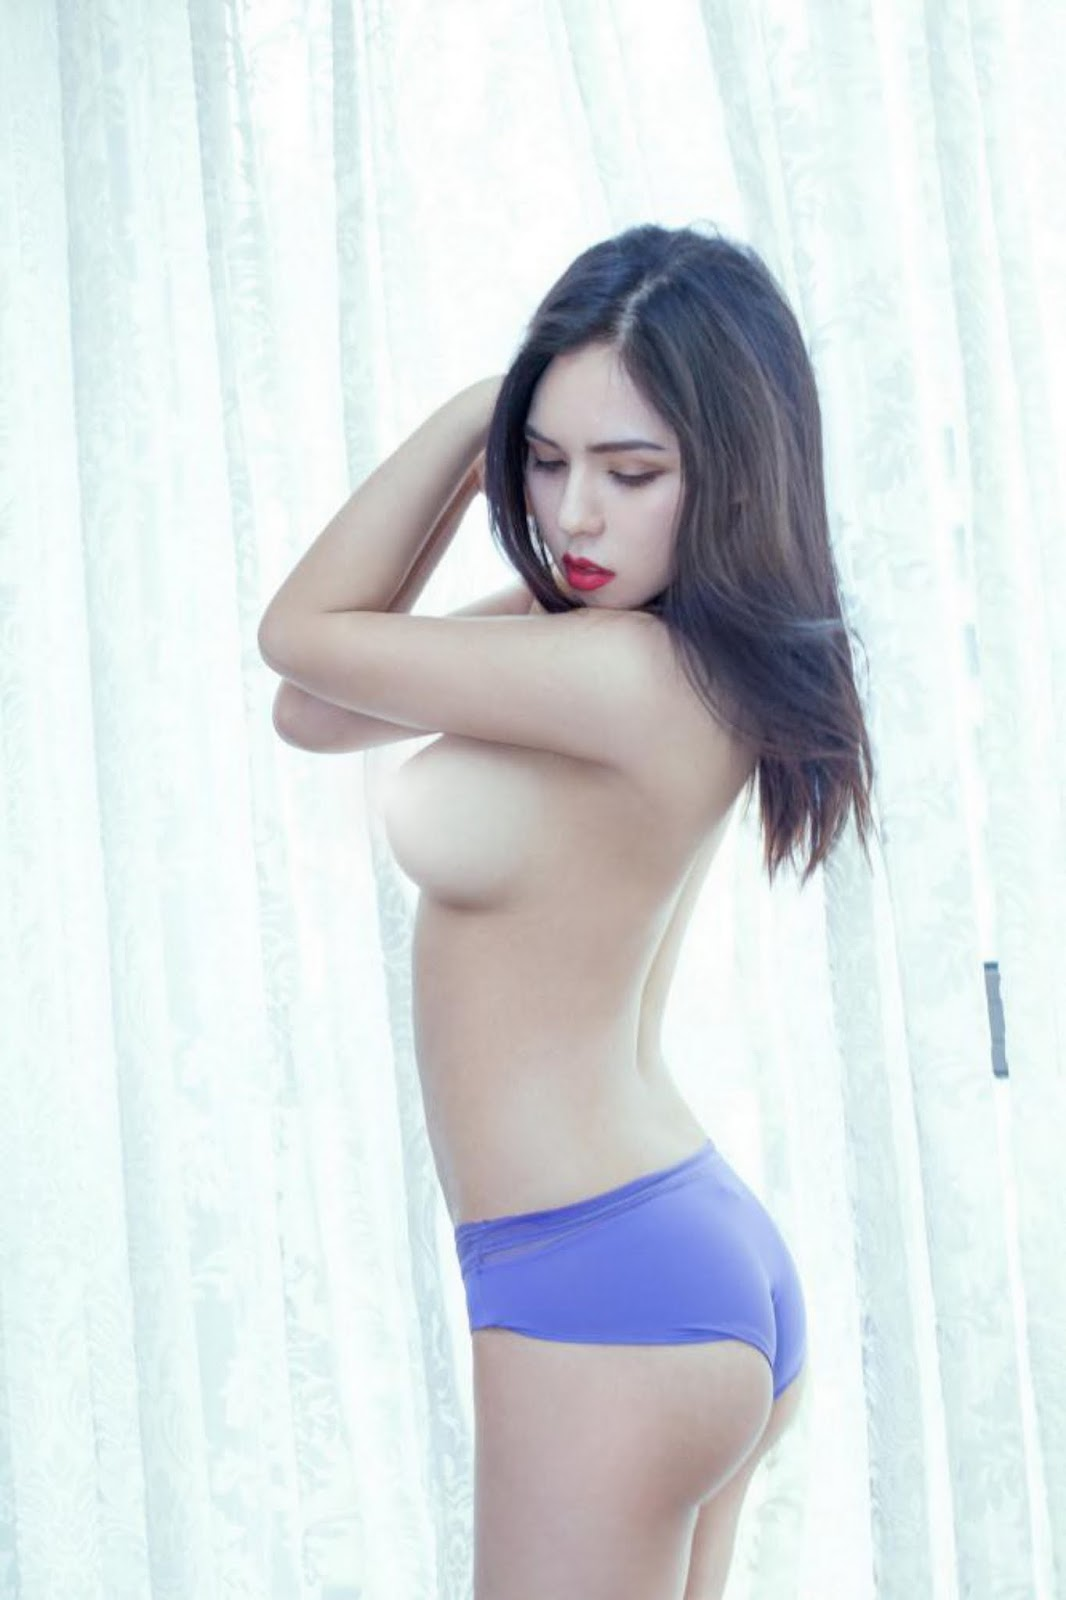 42 - Lake Model Sexy TUIGIRL NO.52 Hot